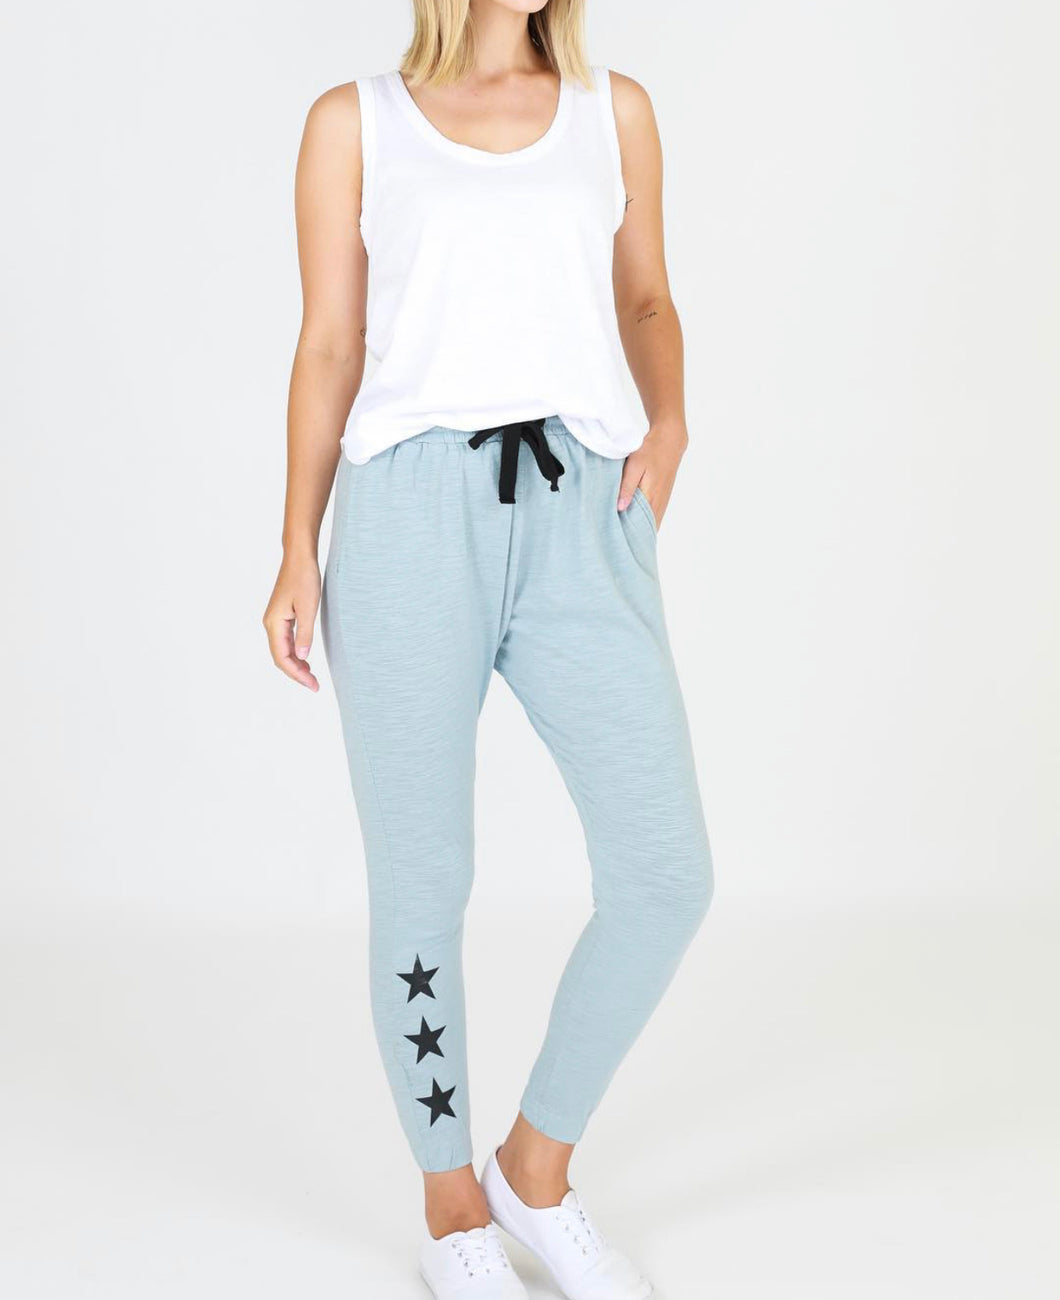 SAT + SUN by 3RD Story STAR Pants/Joggers